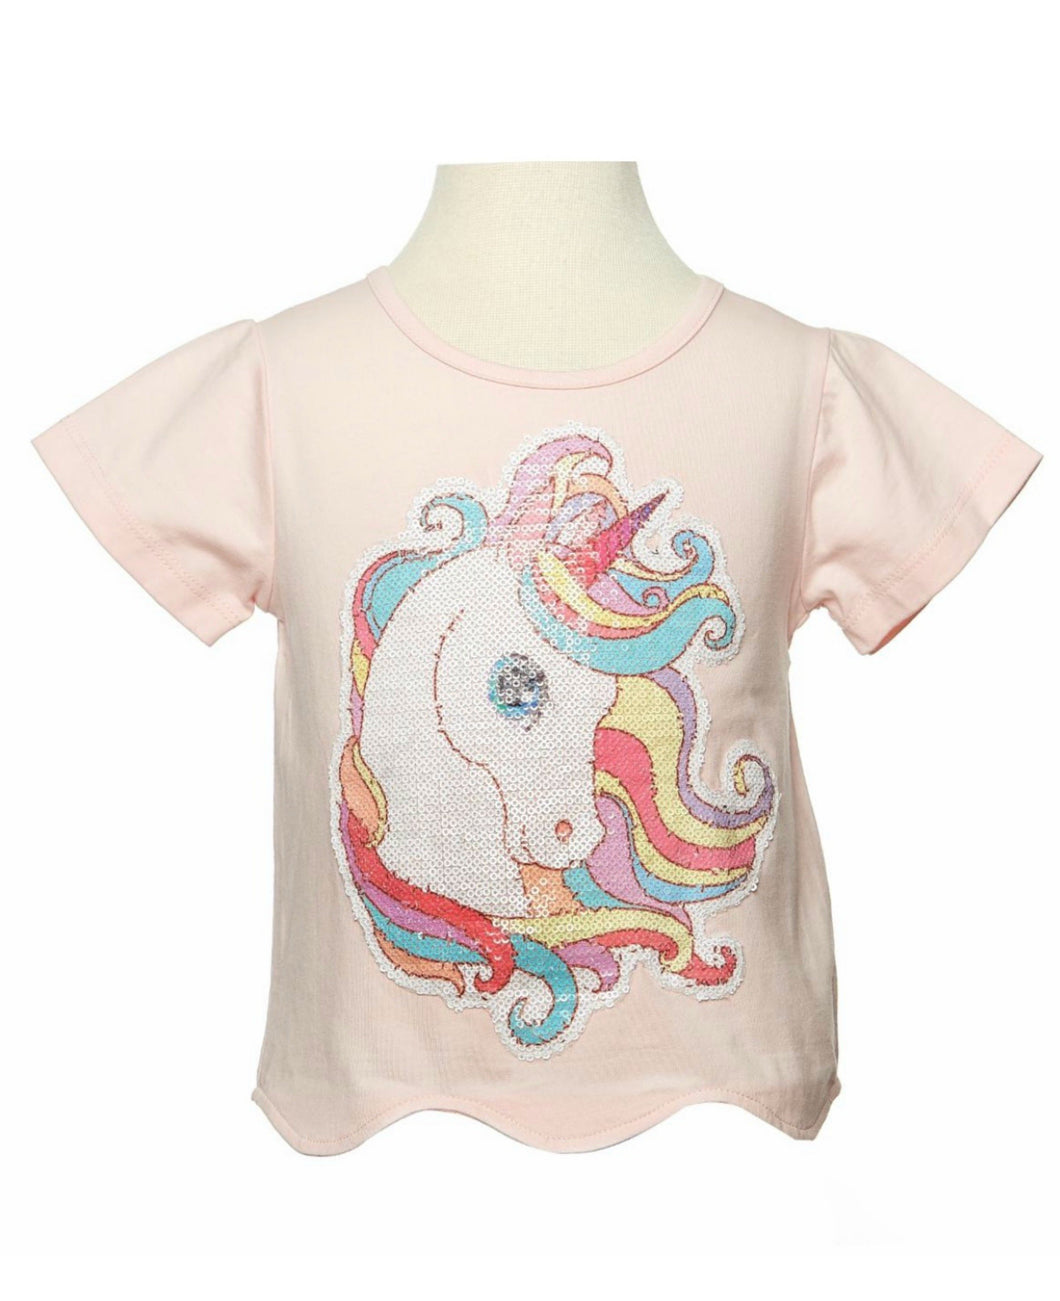 Doe a Dear Pink Scalloped Unicorn and Rainbow Tee - Honeypiekids.com